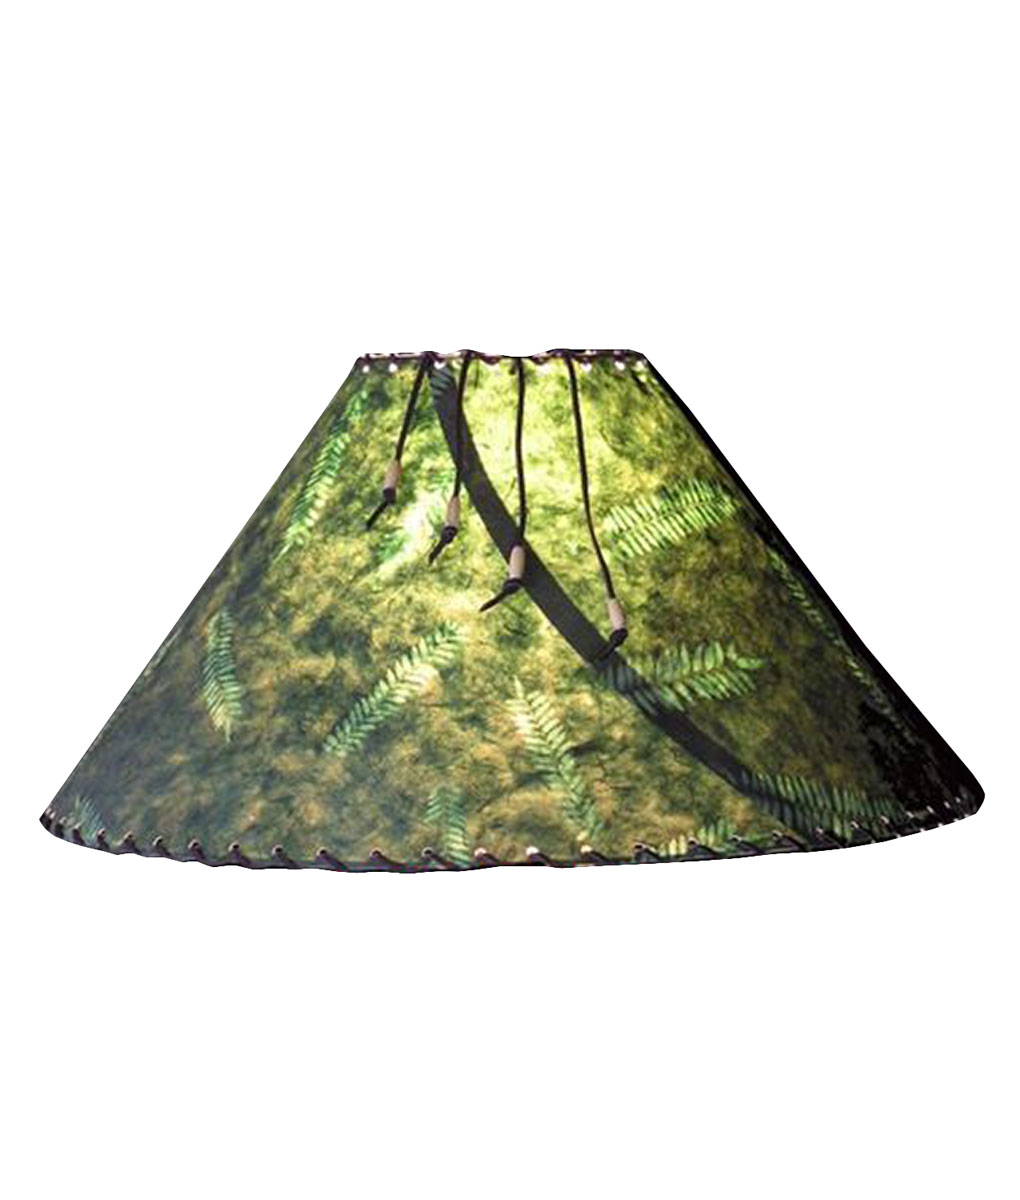 Forest Green Fern Lamp Shade - Rustic Artistry